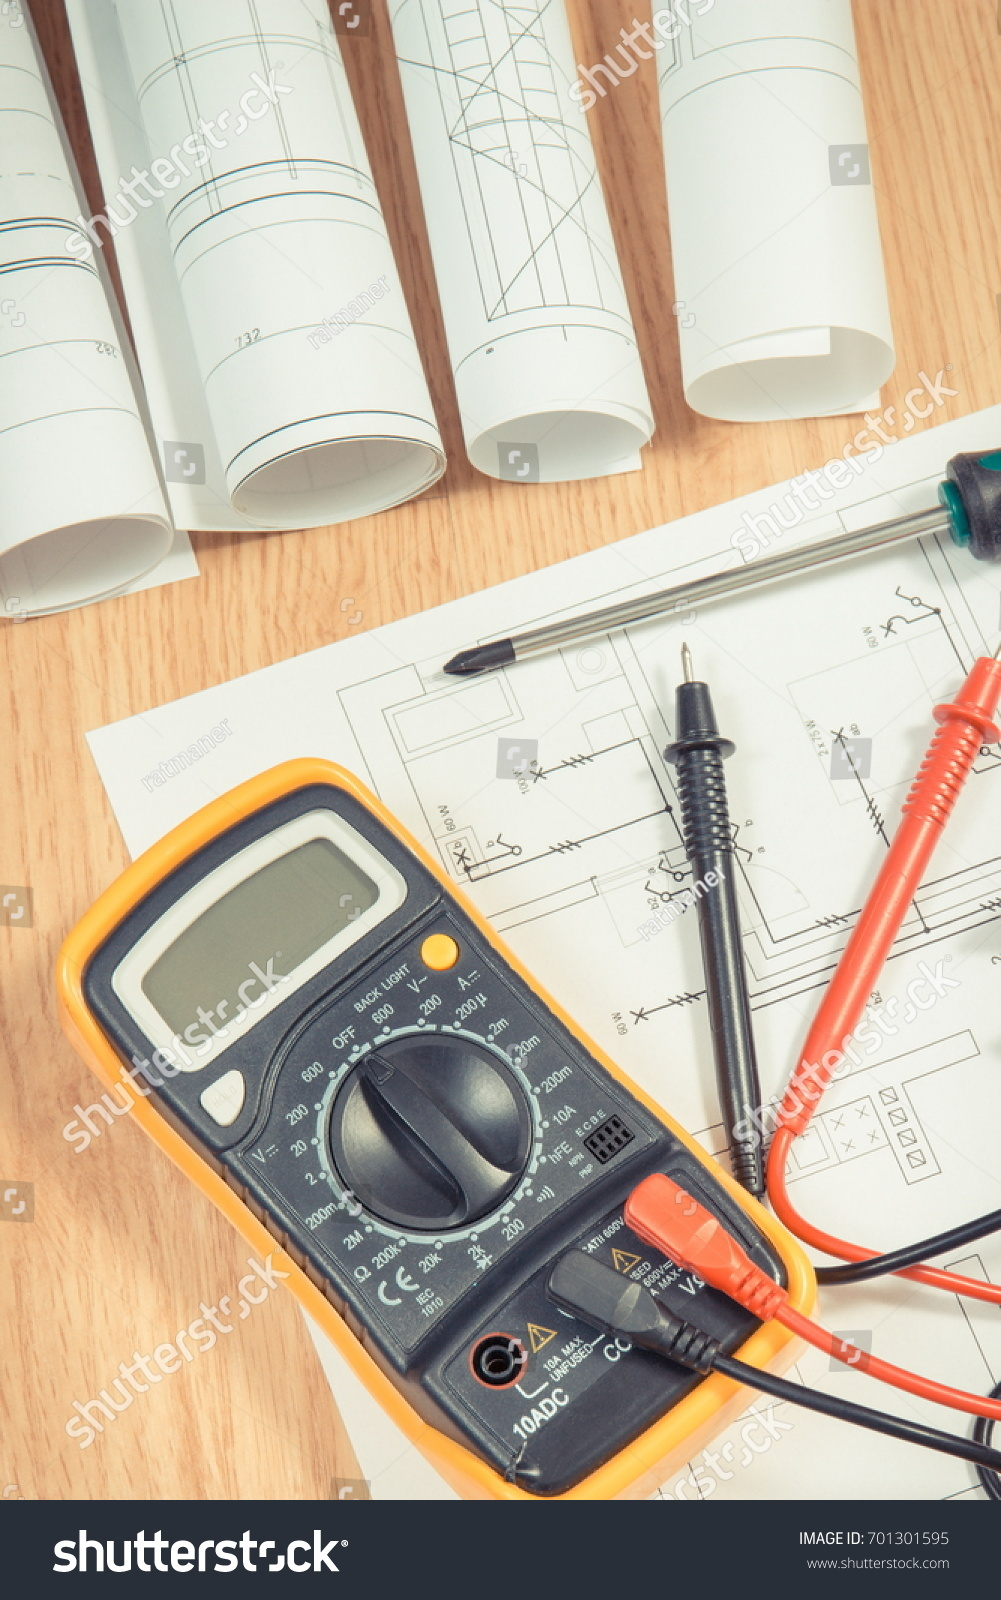 Electrical construction blueprint drawings diagrams multimeter electrical construction blueprint drawings diagrams multimeter stock photo 701301595 shutterstock malvernweather Gallery